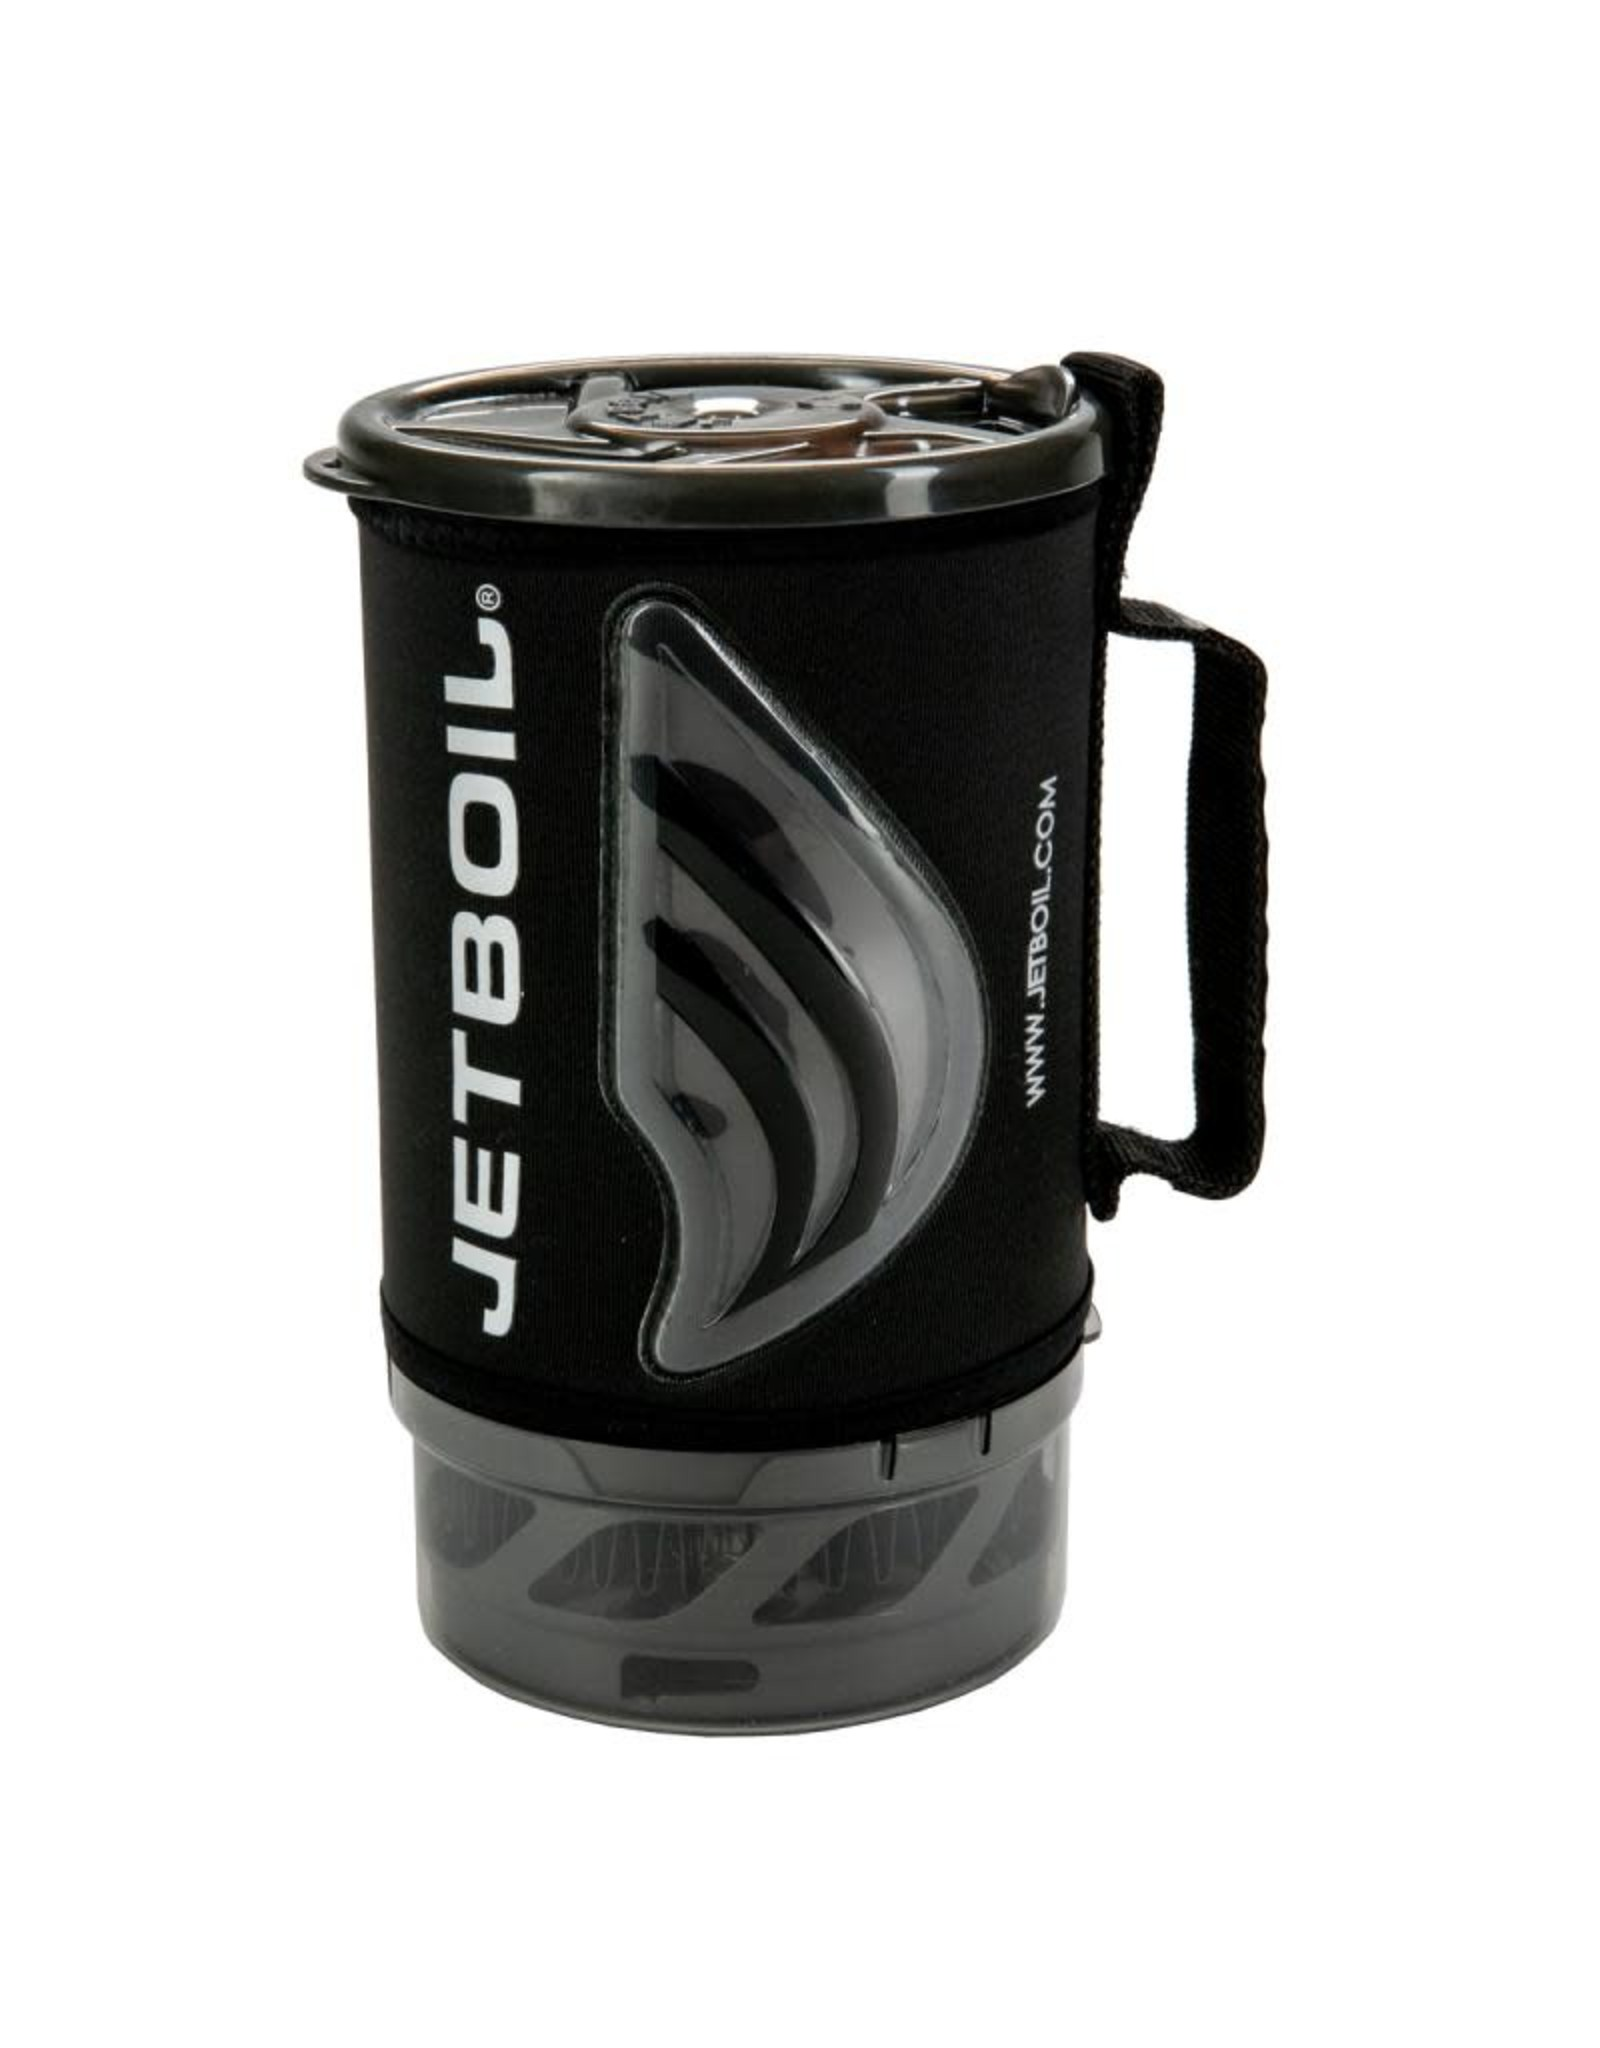 Jetboil Flash Cook System